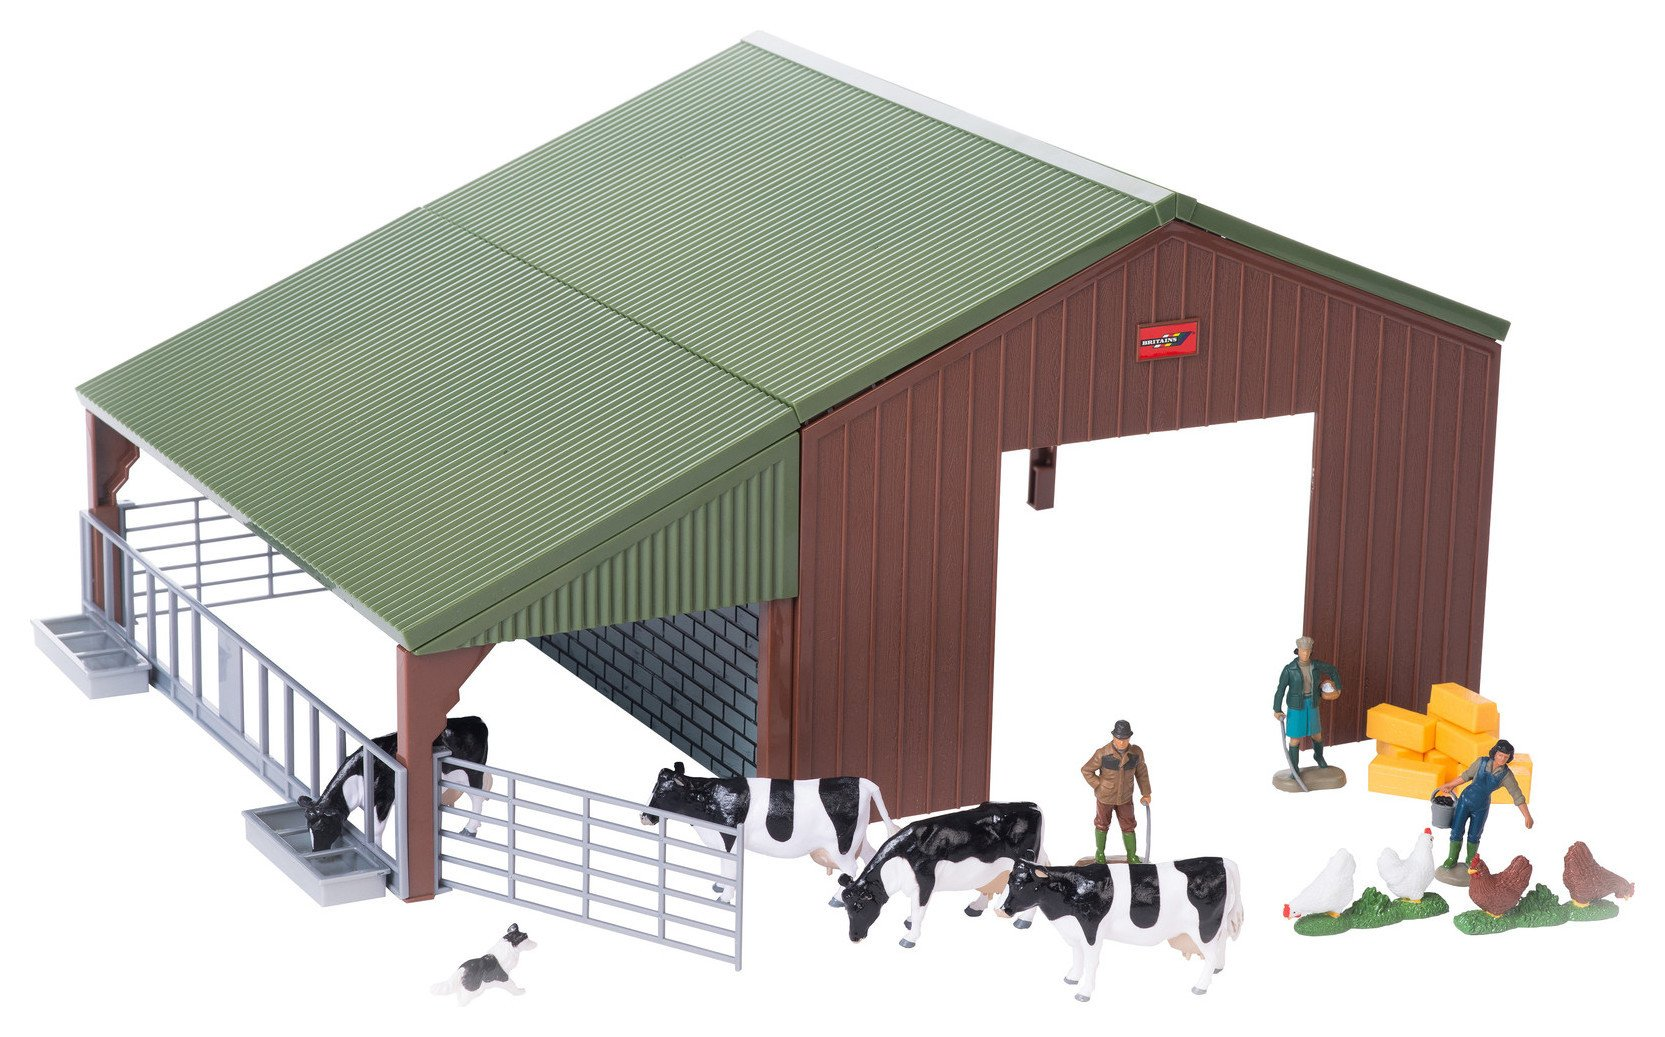 Compare prices for 132 Farm Building Set